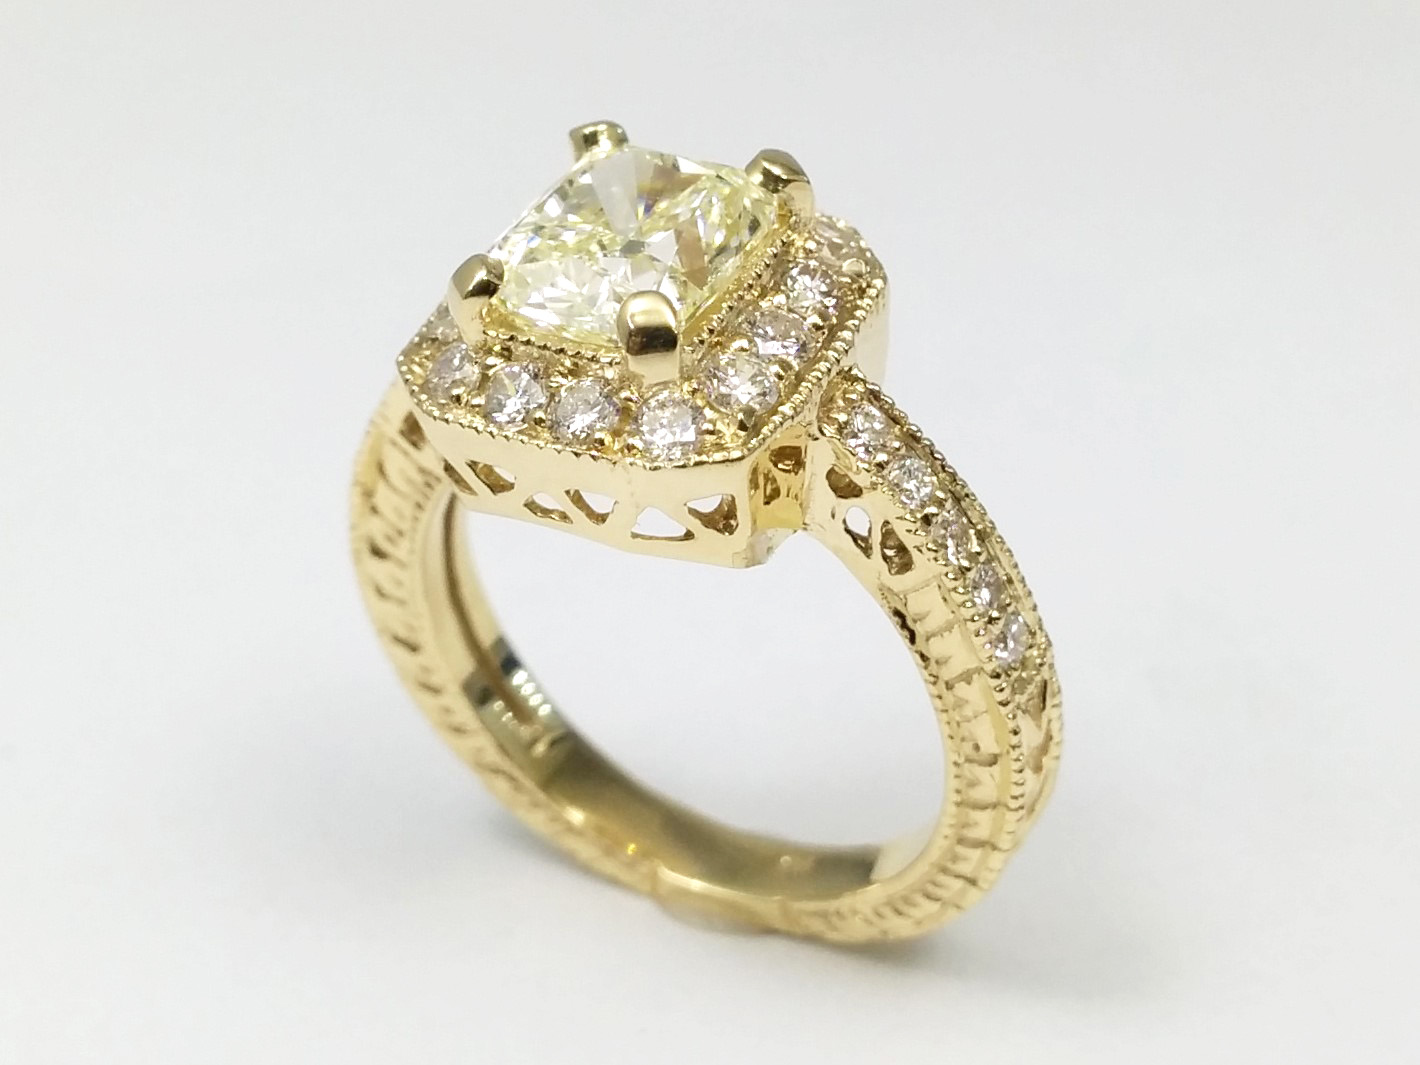 Cushion Diamond Halo Engagement Ring Vintage Style 0.40 tcw. In 14K Yellow Gold